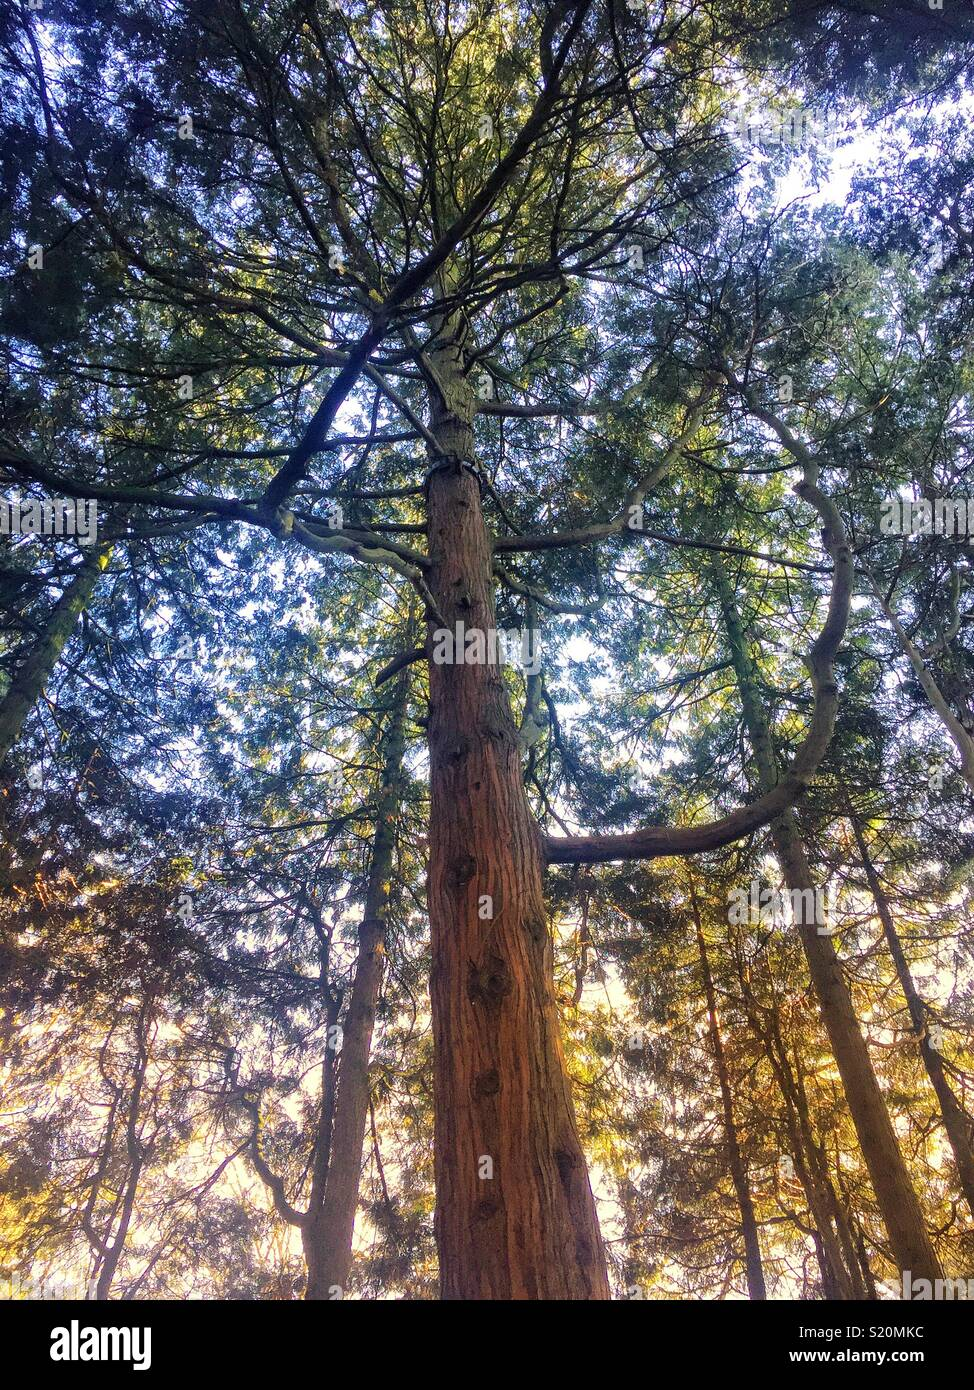 Tall trees - Stock Image